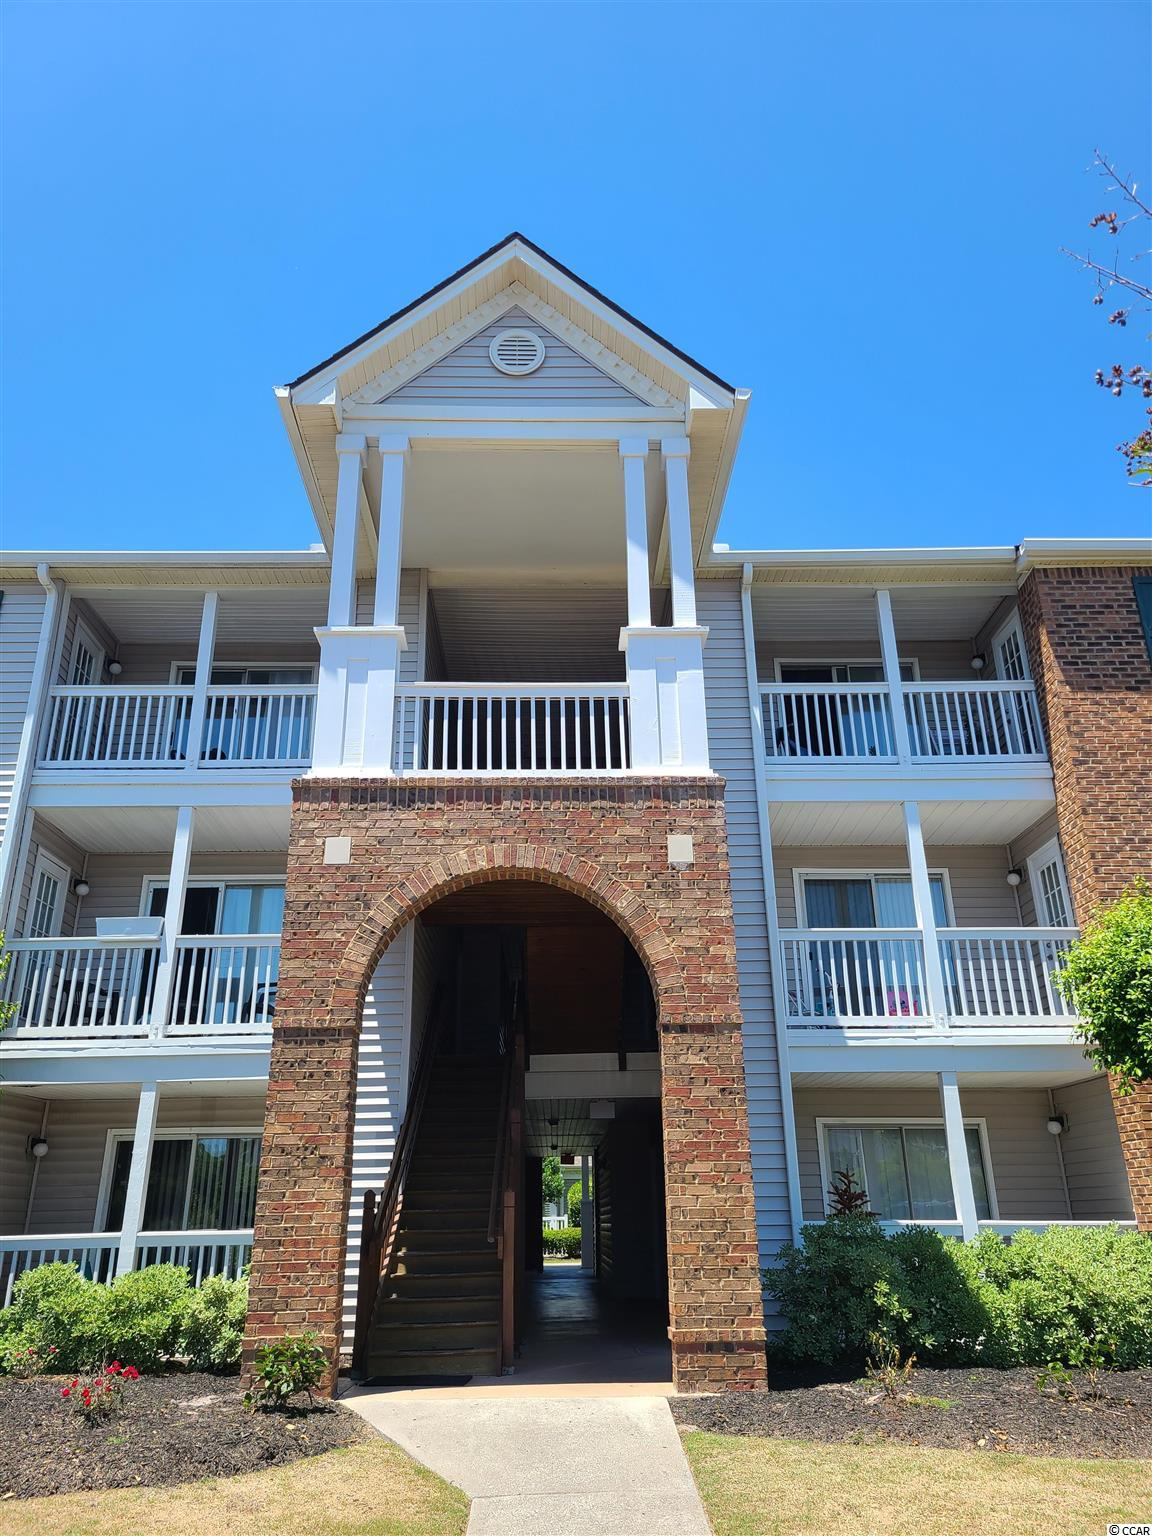 Welcome to your new beach condo 3761 Citation Way! Located on the first floor, convenient to the pool and other activities! This desirable neighborhood is placed right in the heart of Myrtle Beach! Close to all major attractions, beaches, and more! This one bedroom one full bathroom is the perfect condo to enjoy your weekends at the beach! Do not miss out on this opportunity! Contact today for showing!